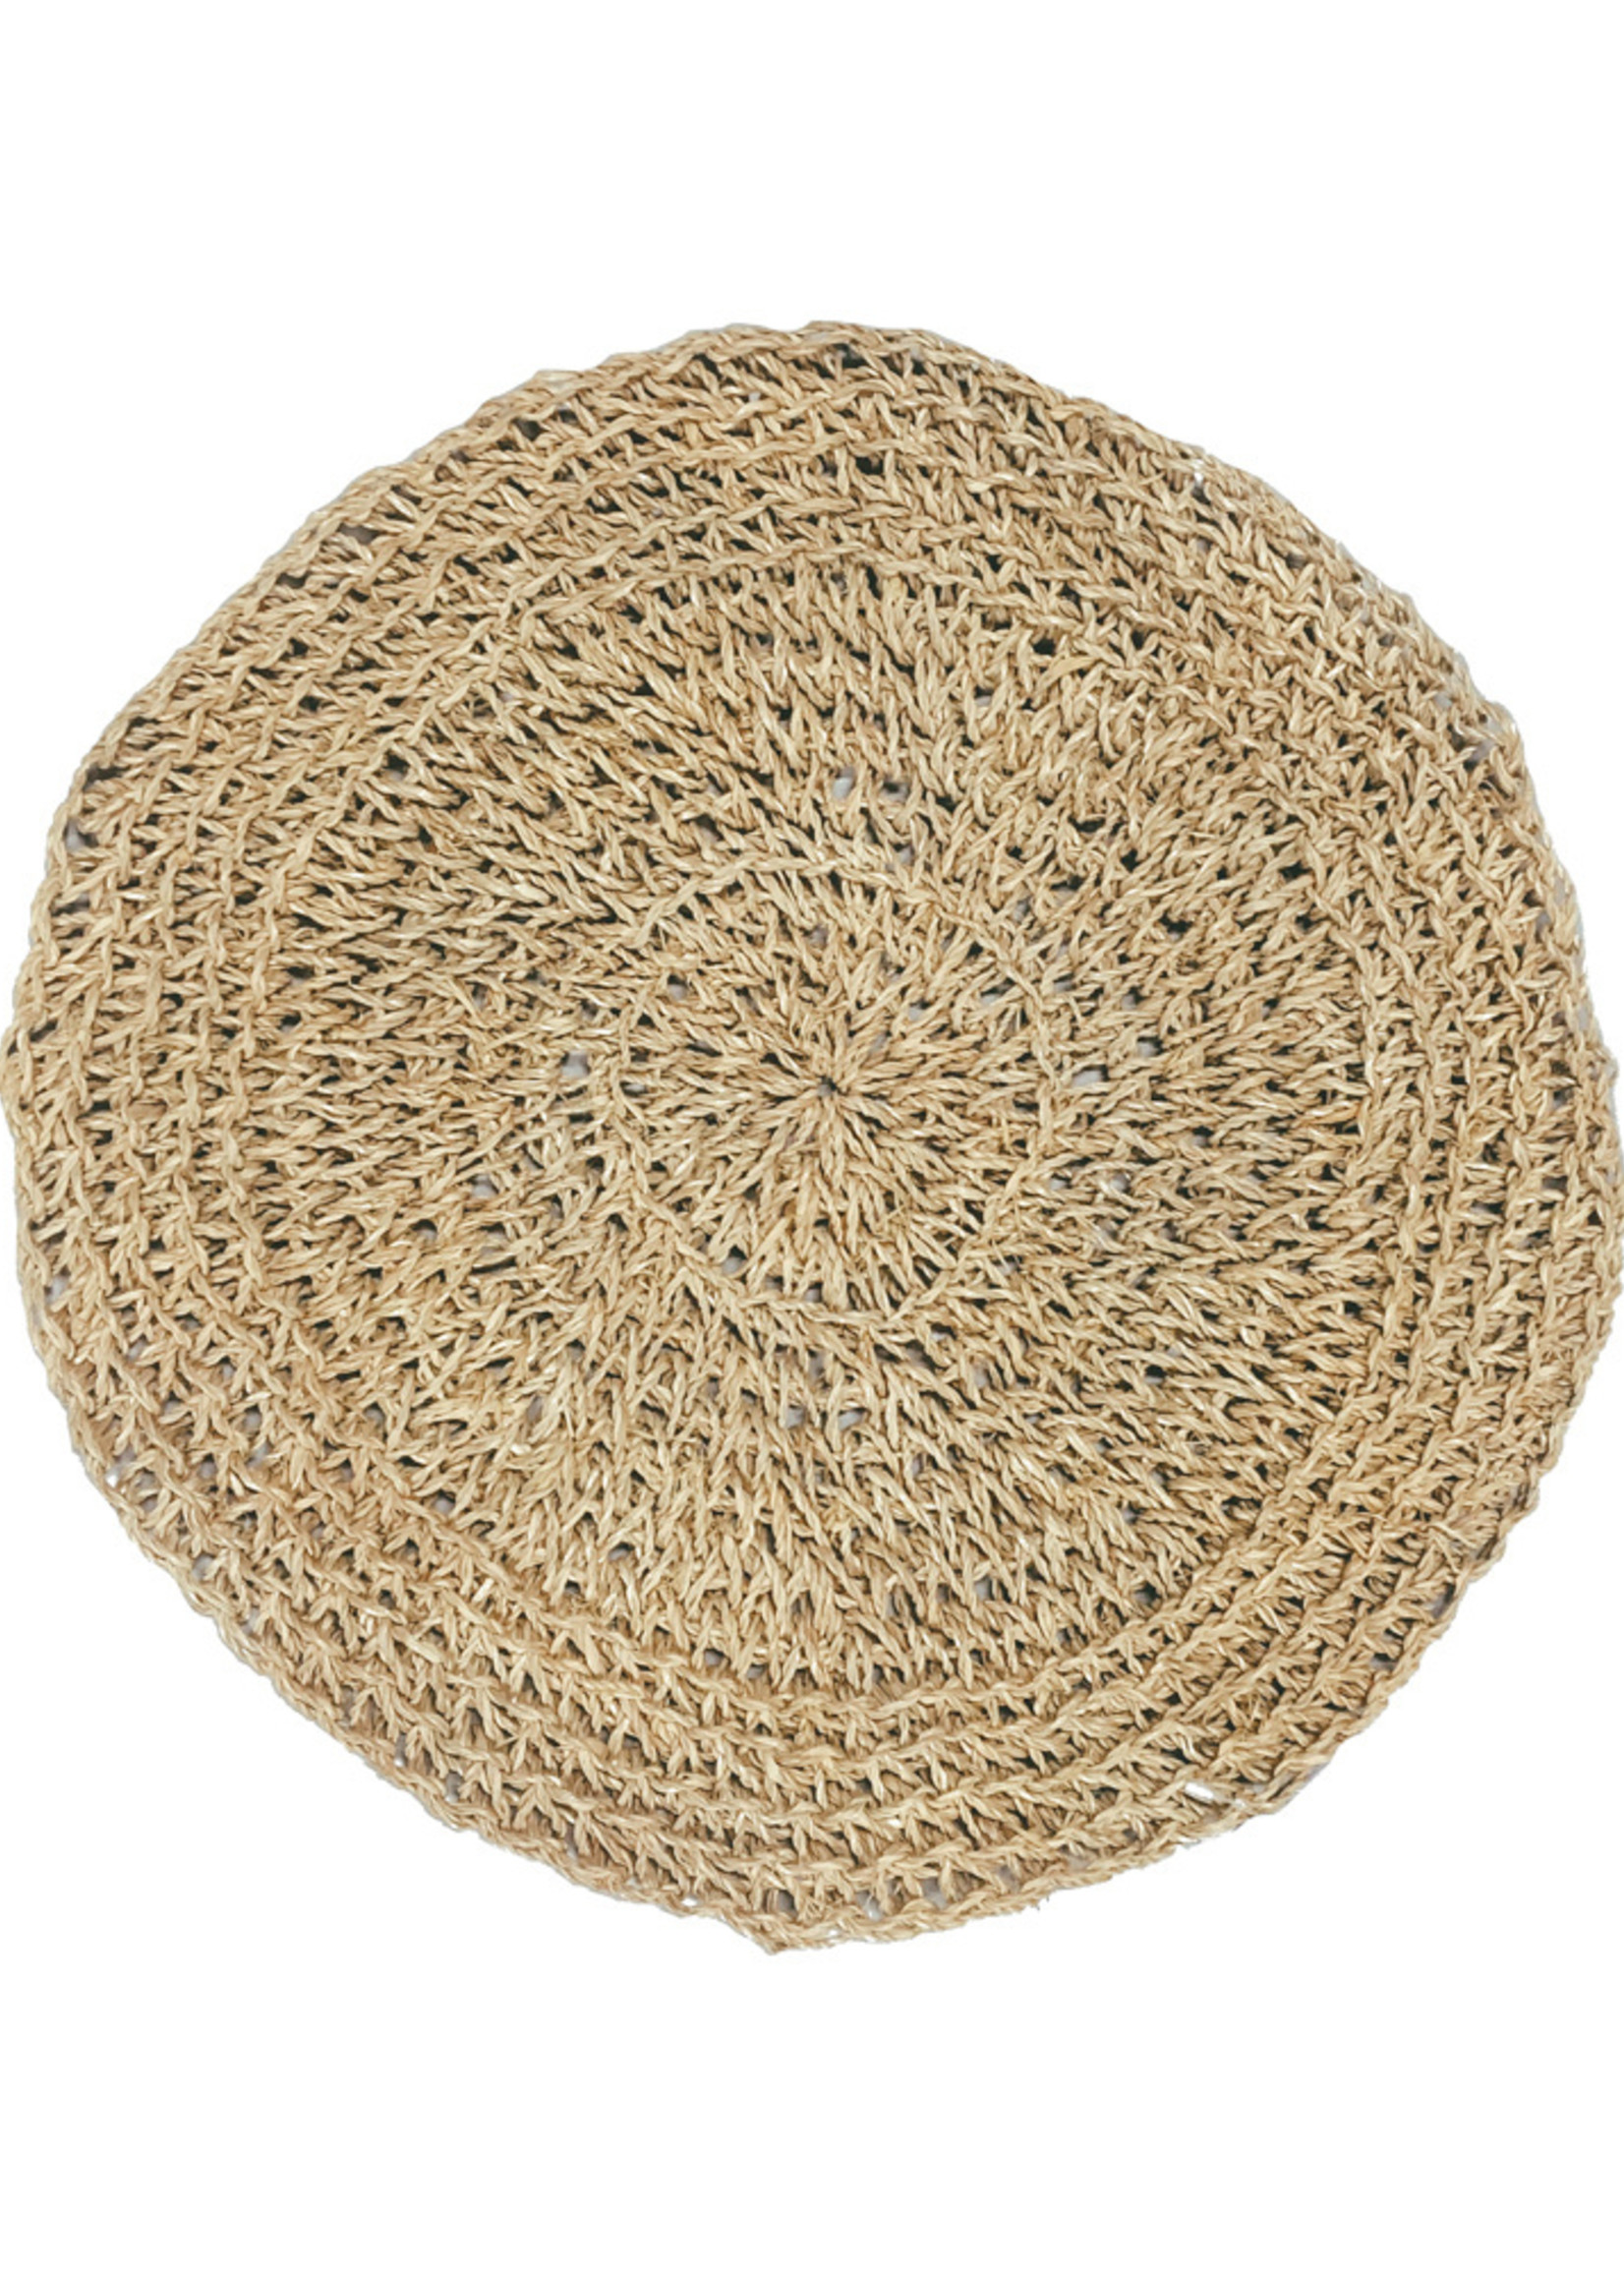 The Seagrass Placemat Round - Natural